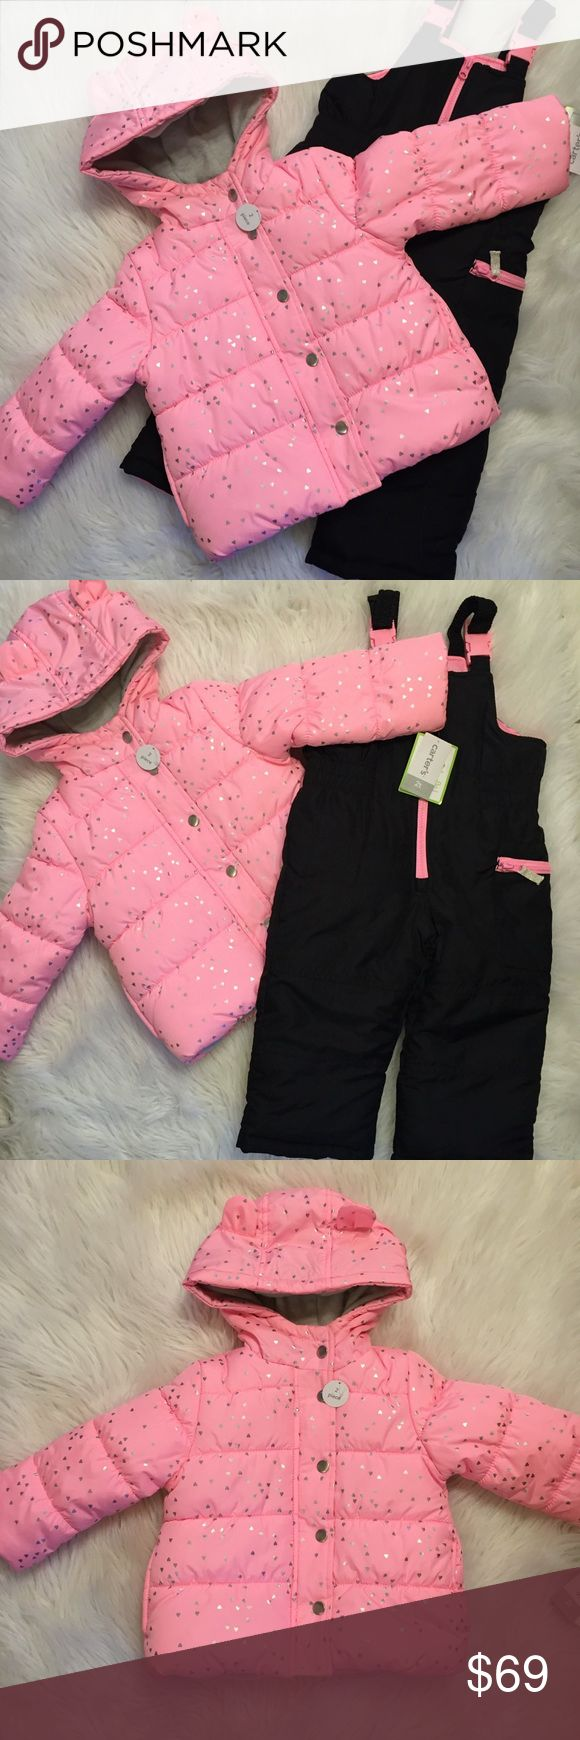 Adorable toddler Snow suit set Pink jacket covered in shiny little hearts, black and pink bib snow suit. Insulated and lined, fleece lined hood with cute ears, zip front, elastic clasp straps, soft poly fill, water resistant, machine washable. Brand new with tags Carter's Jackets & Coats #SuitSets